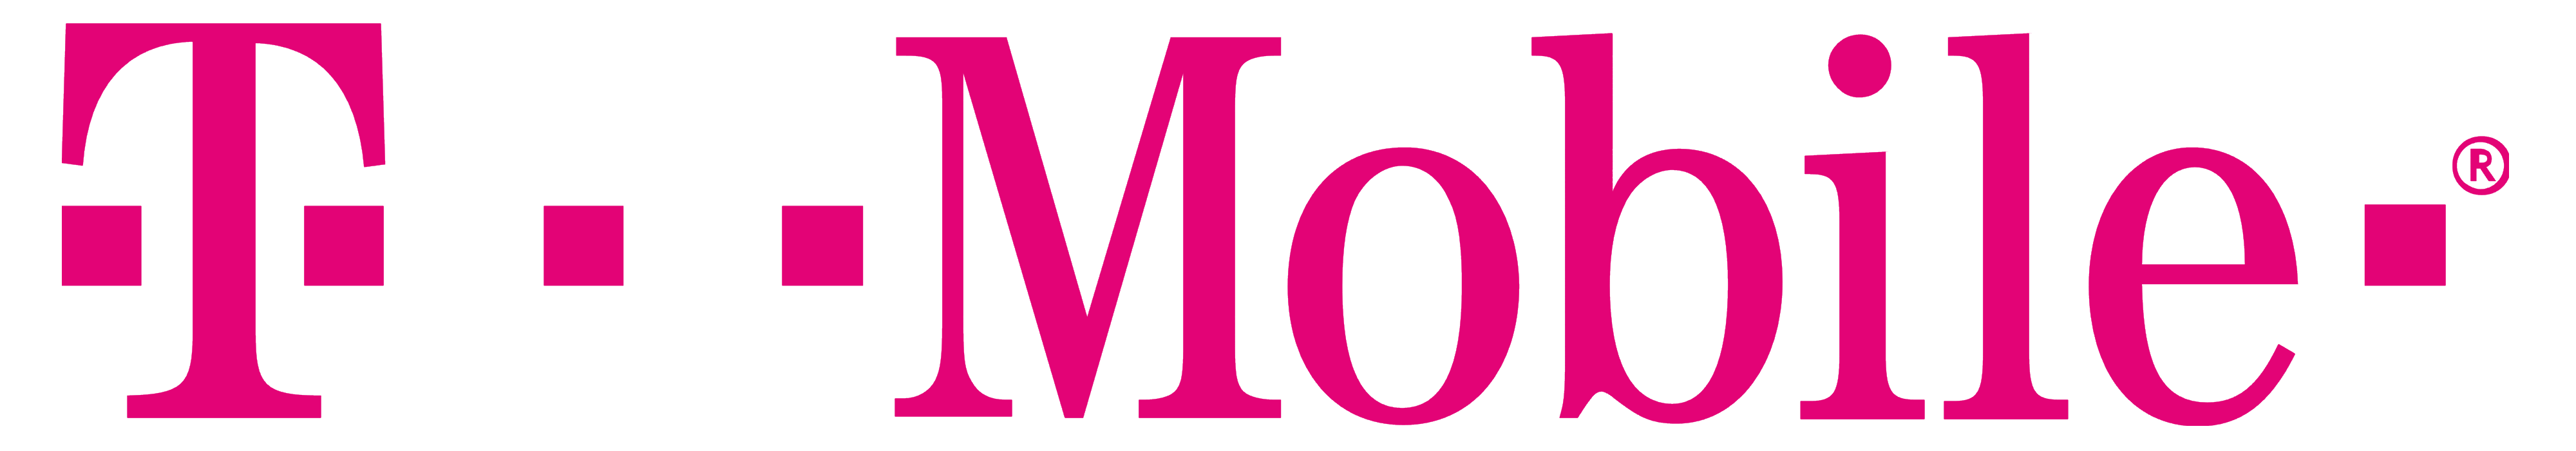 t-mobile-logo-png-4